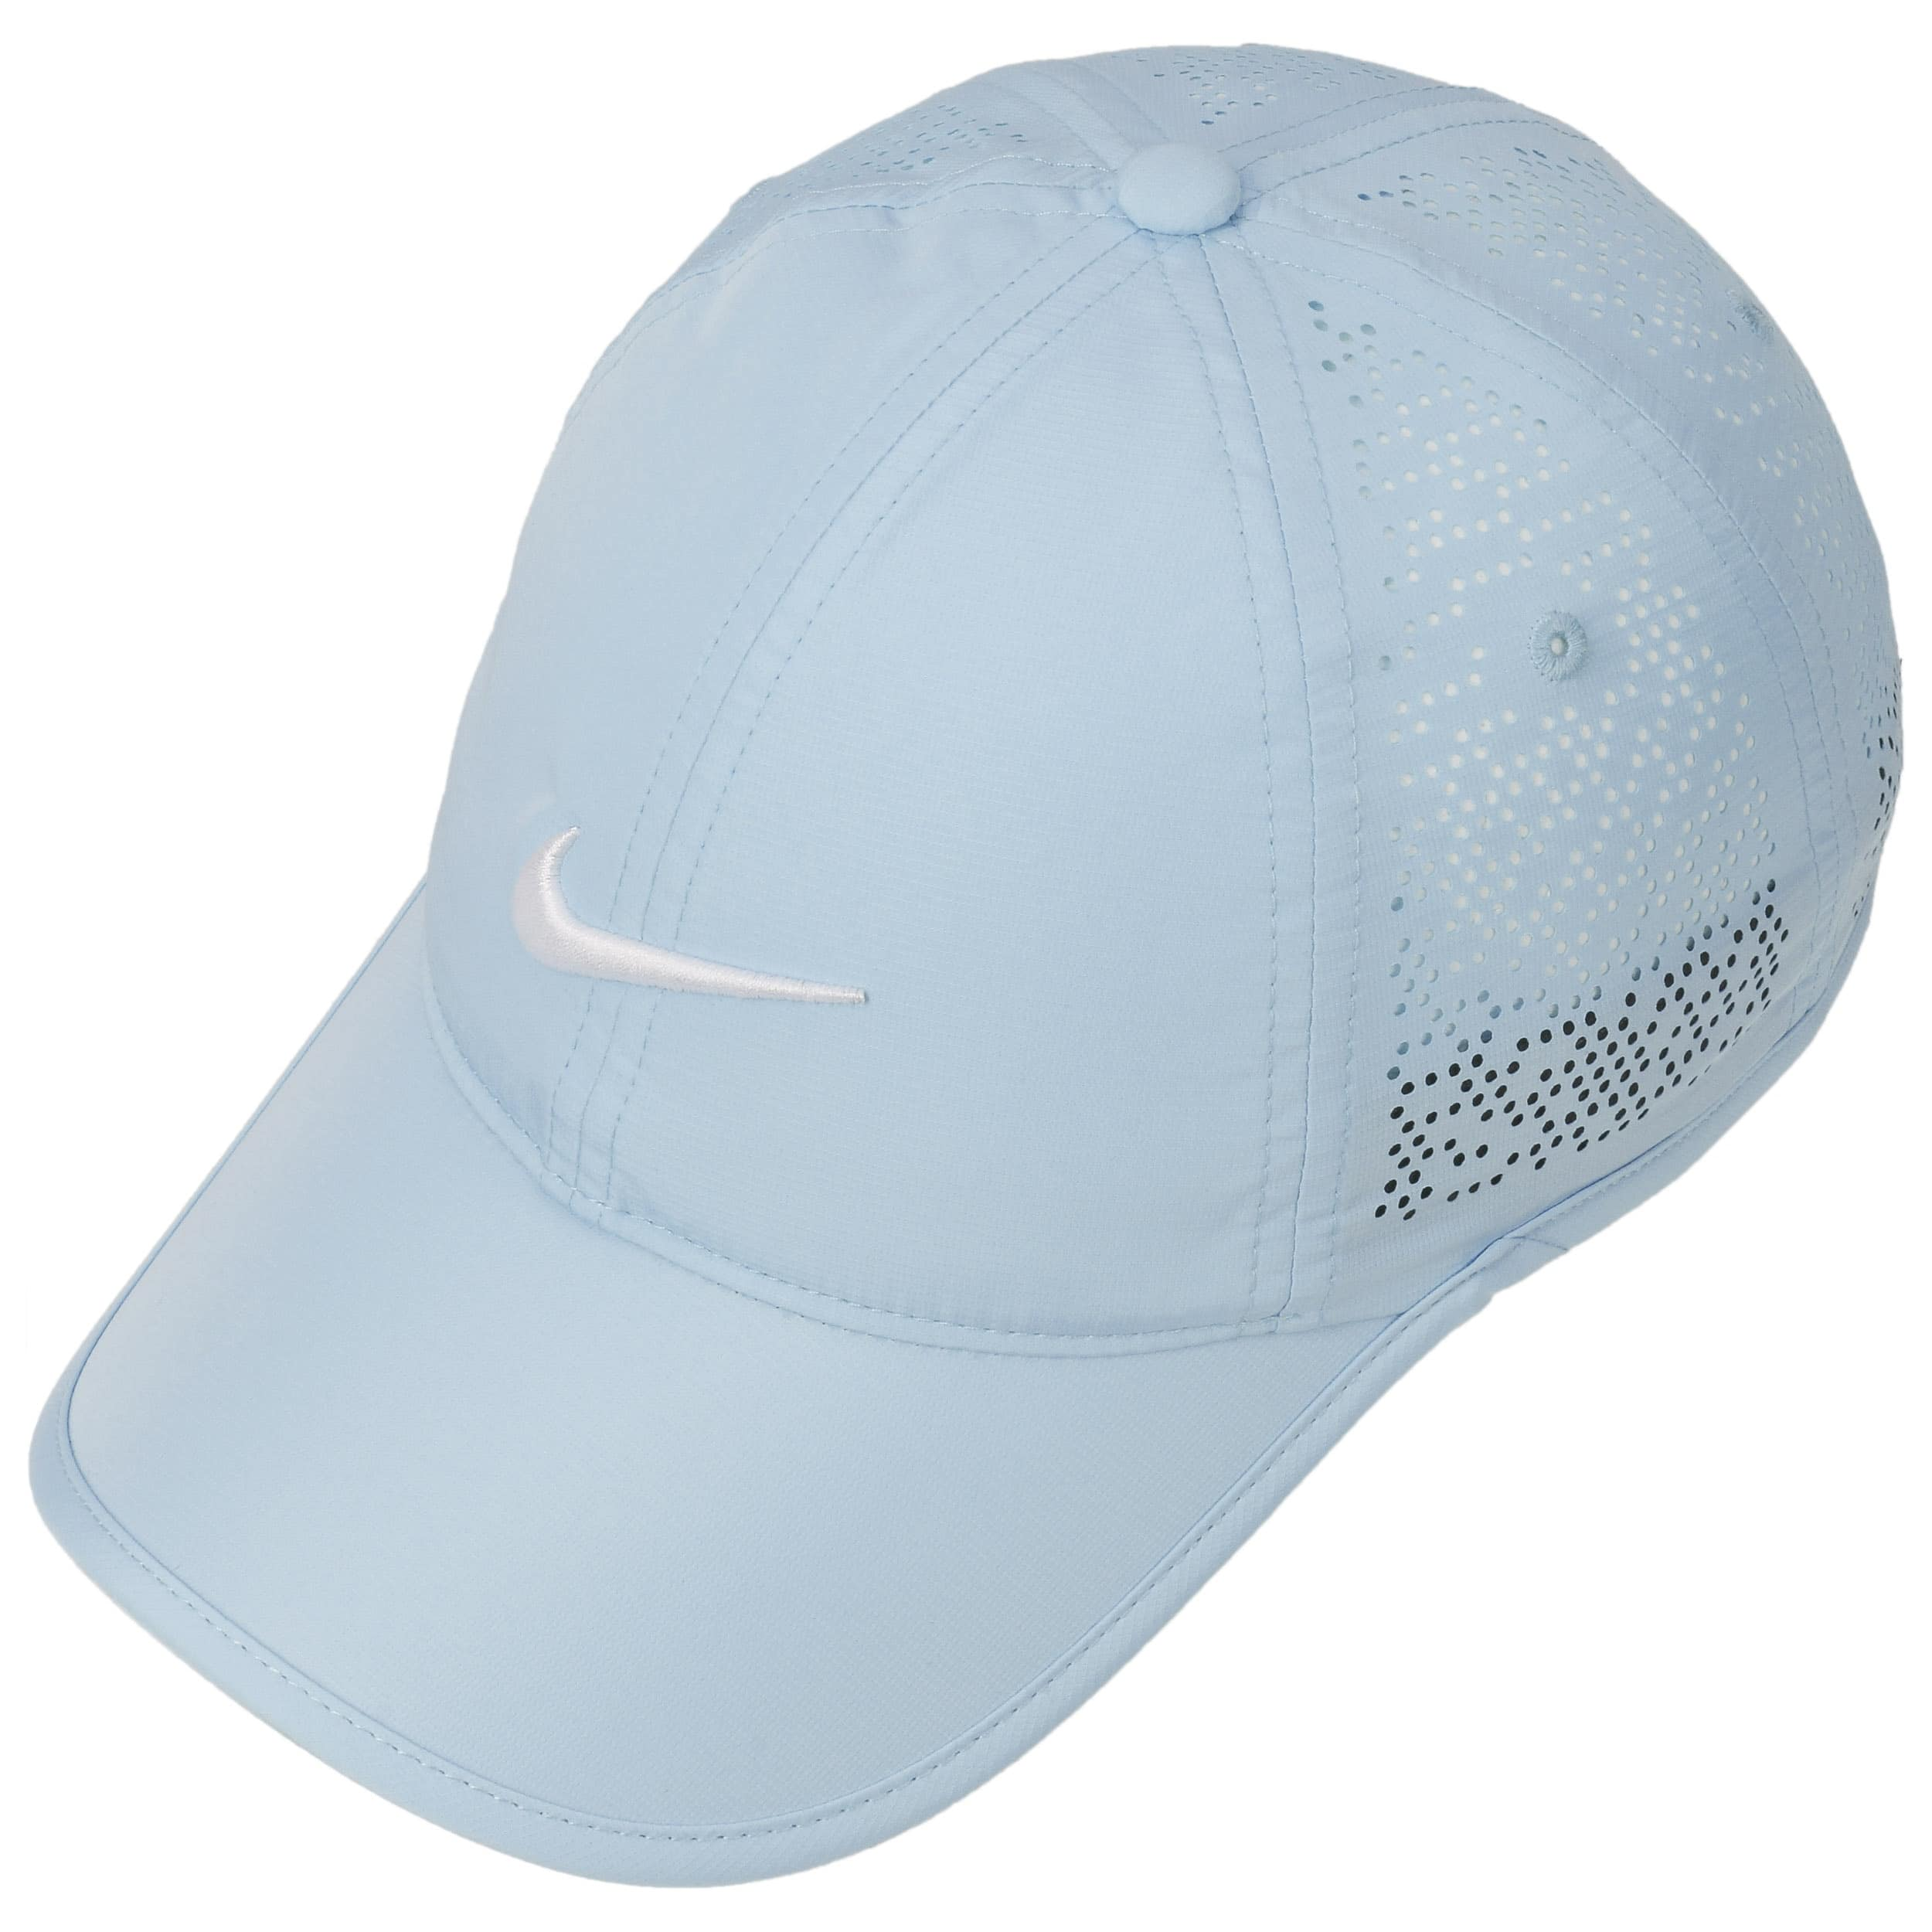 171e28fb13a24 ... Swoosh Perforation Cap by Nike - light blue 1 ...